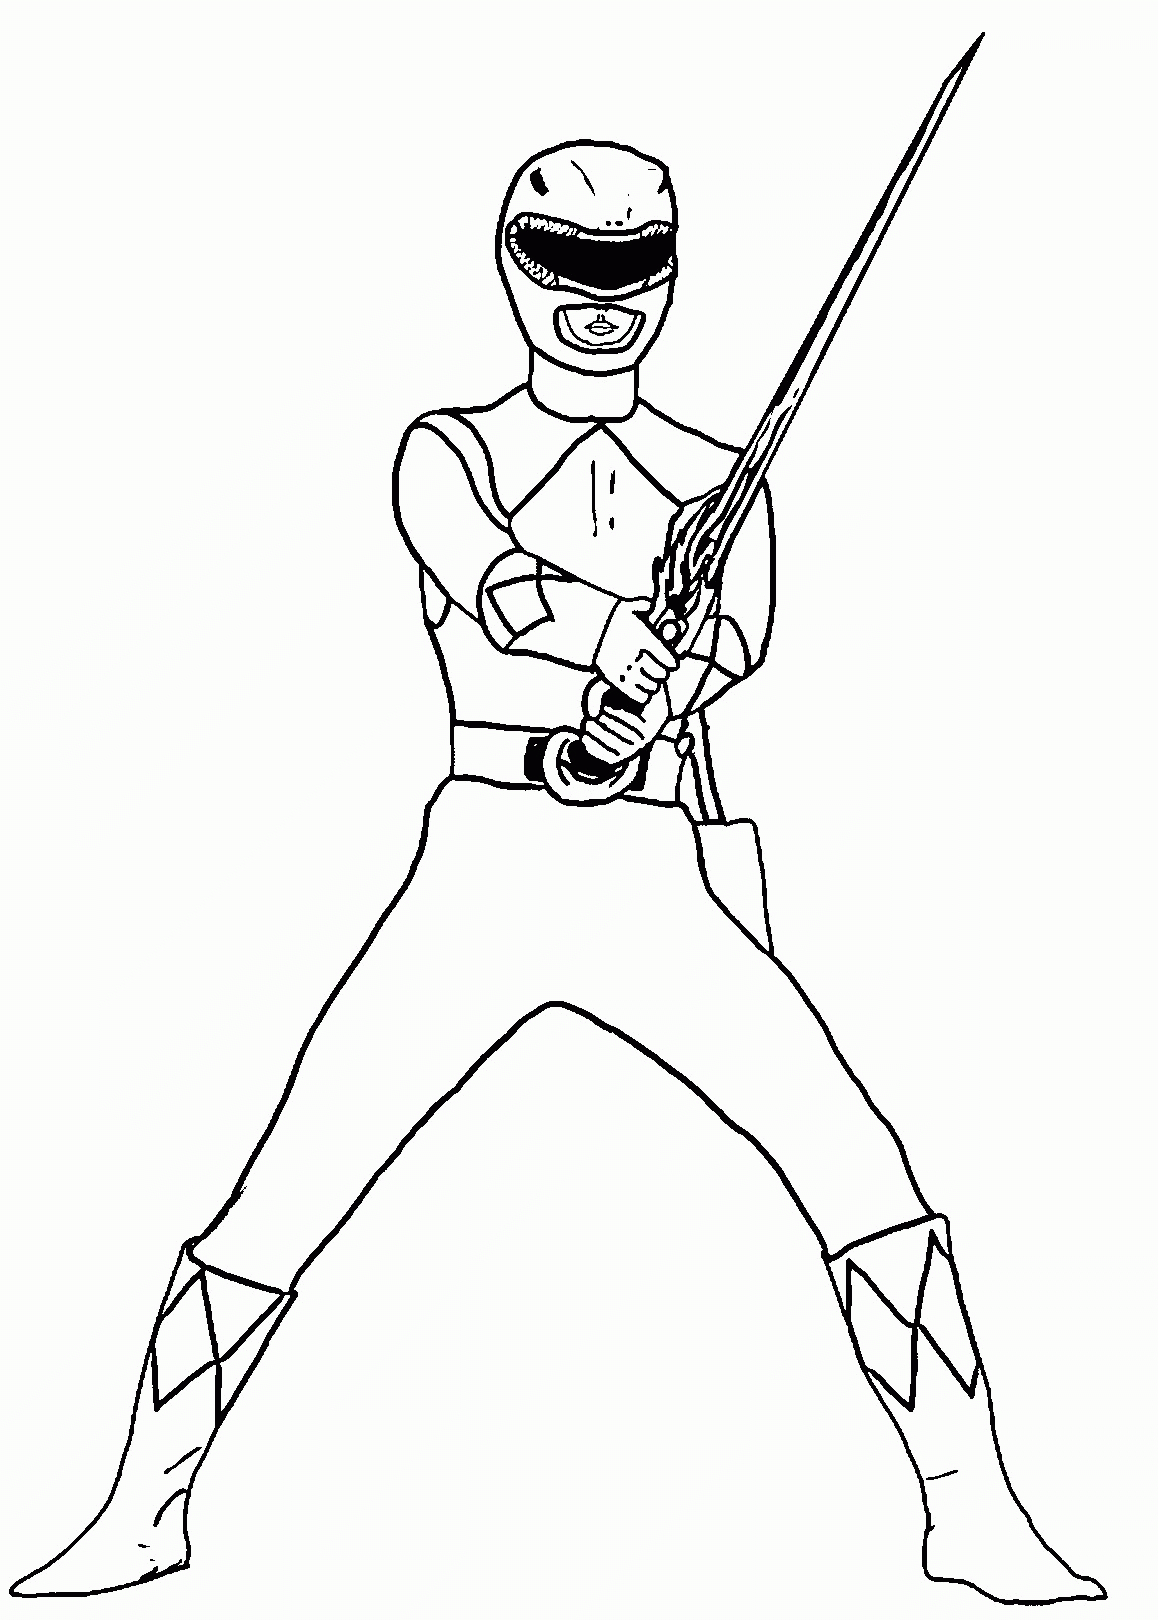 power rangers color pages power rangers coloring pages download and print power color rangers power pages